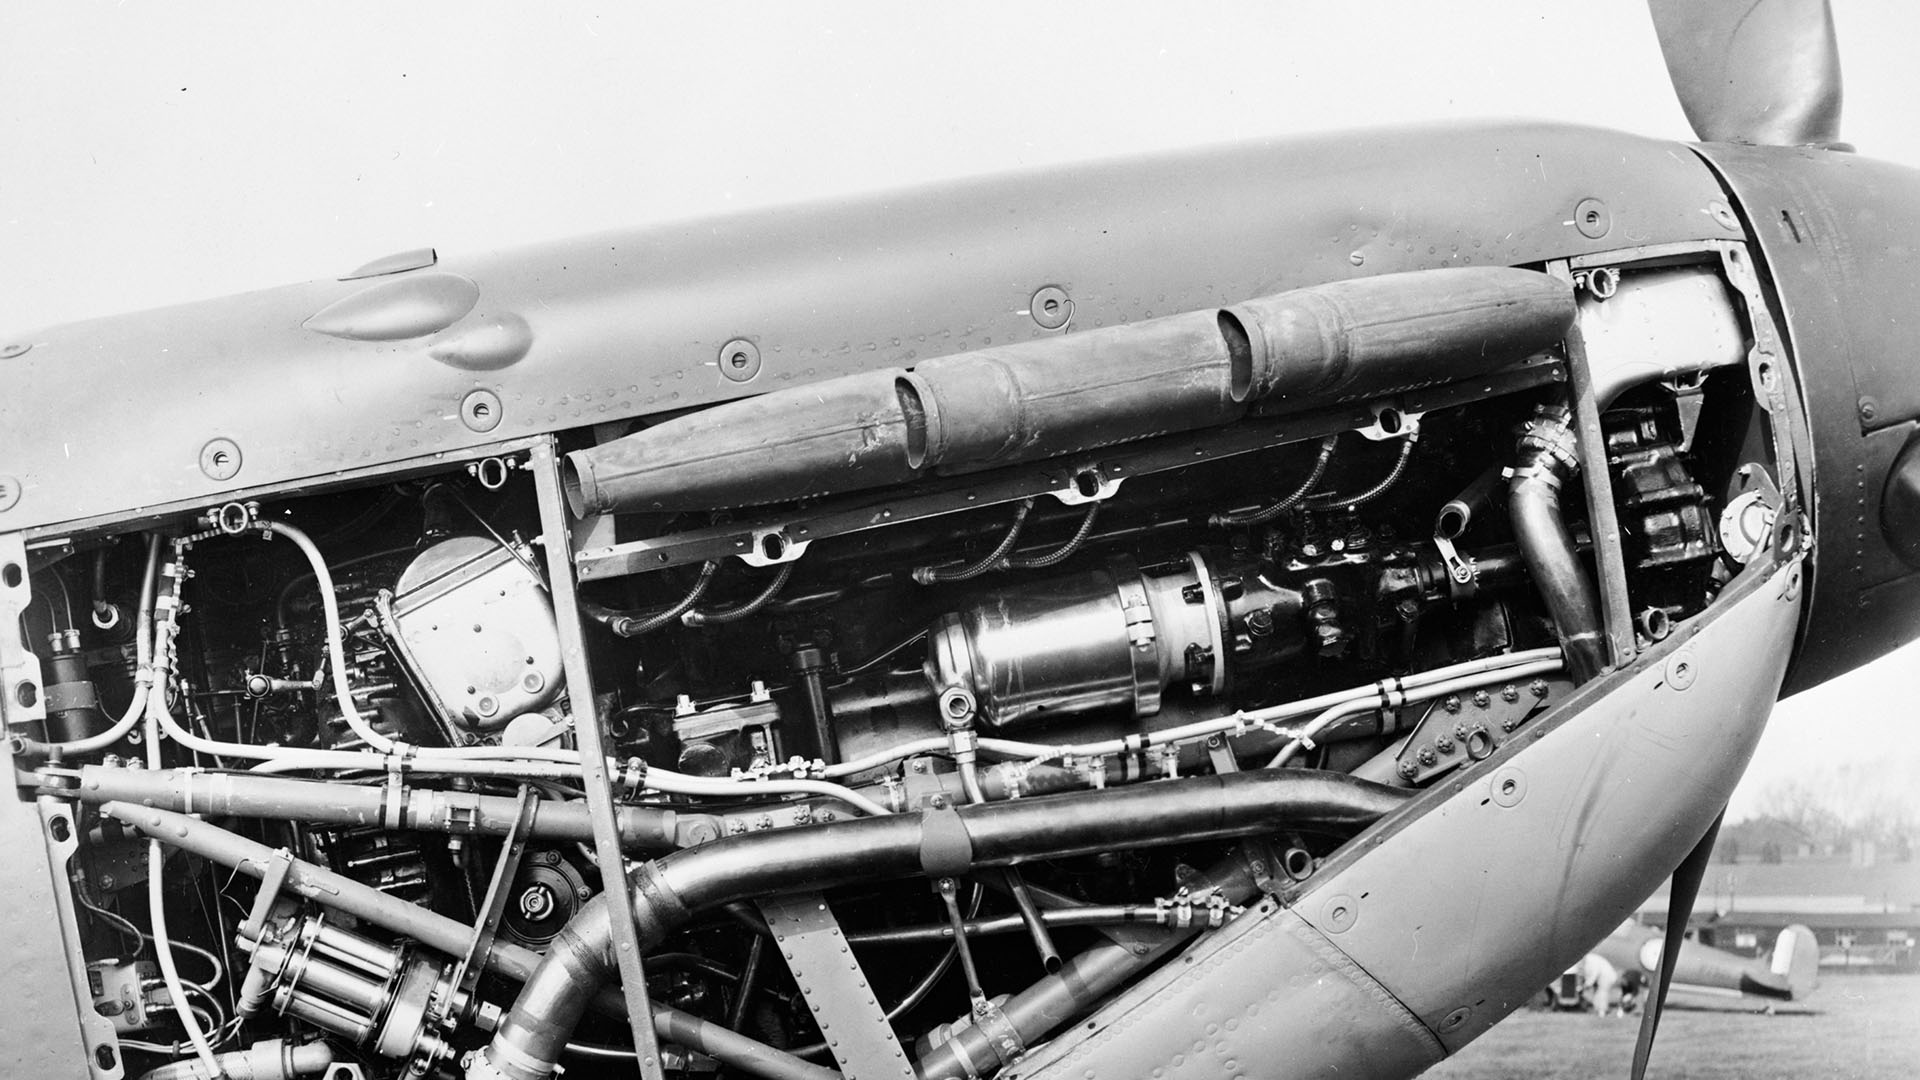 Rolls Royce Merlin engine installed into the Spitfire Mark IIA for the Royal Air Force.